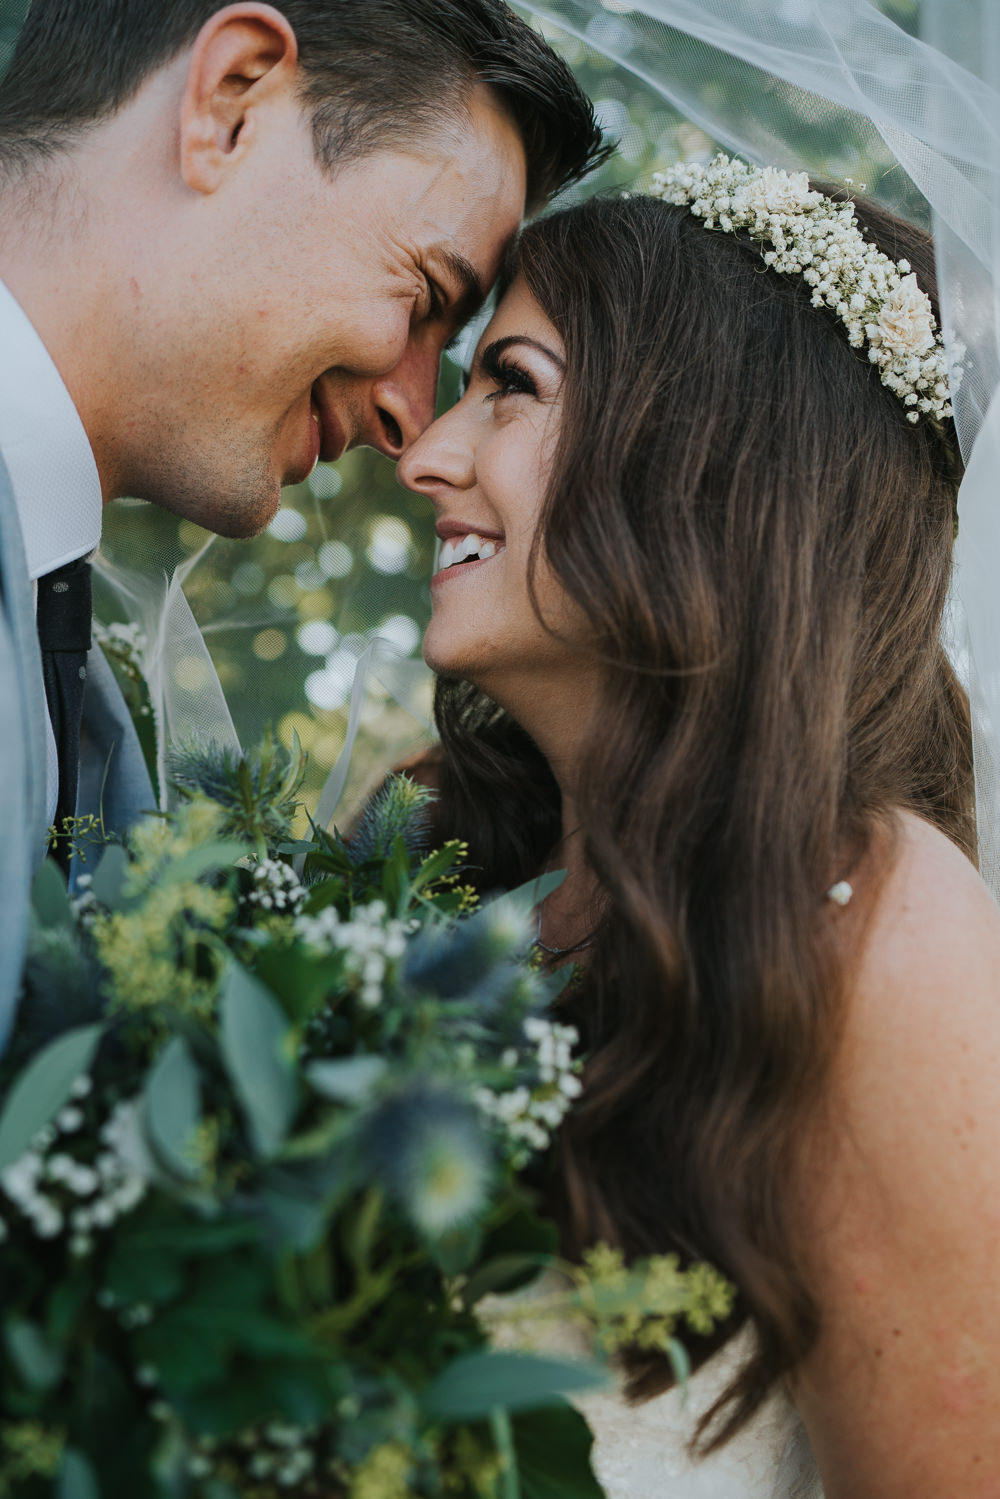 Intimate Outdoor Natural Relaxed Laid Back Summer Bride Groom Kiss Greenery Foliage Bouquet Gypsophila Crown | Prested Hall Wedding Grace Elizabeth Photography